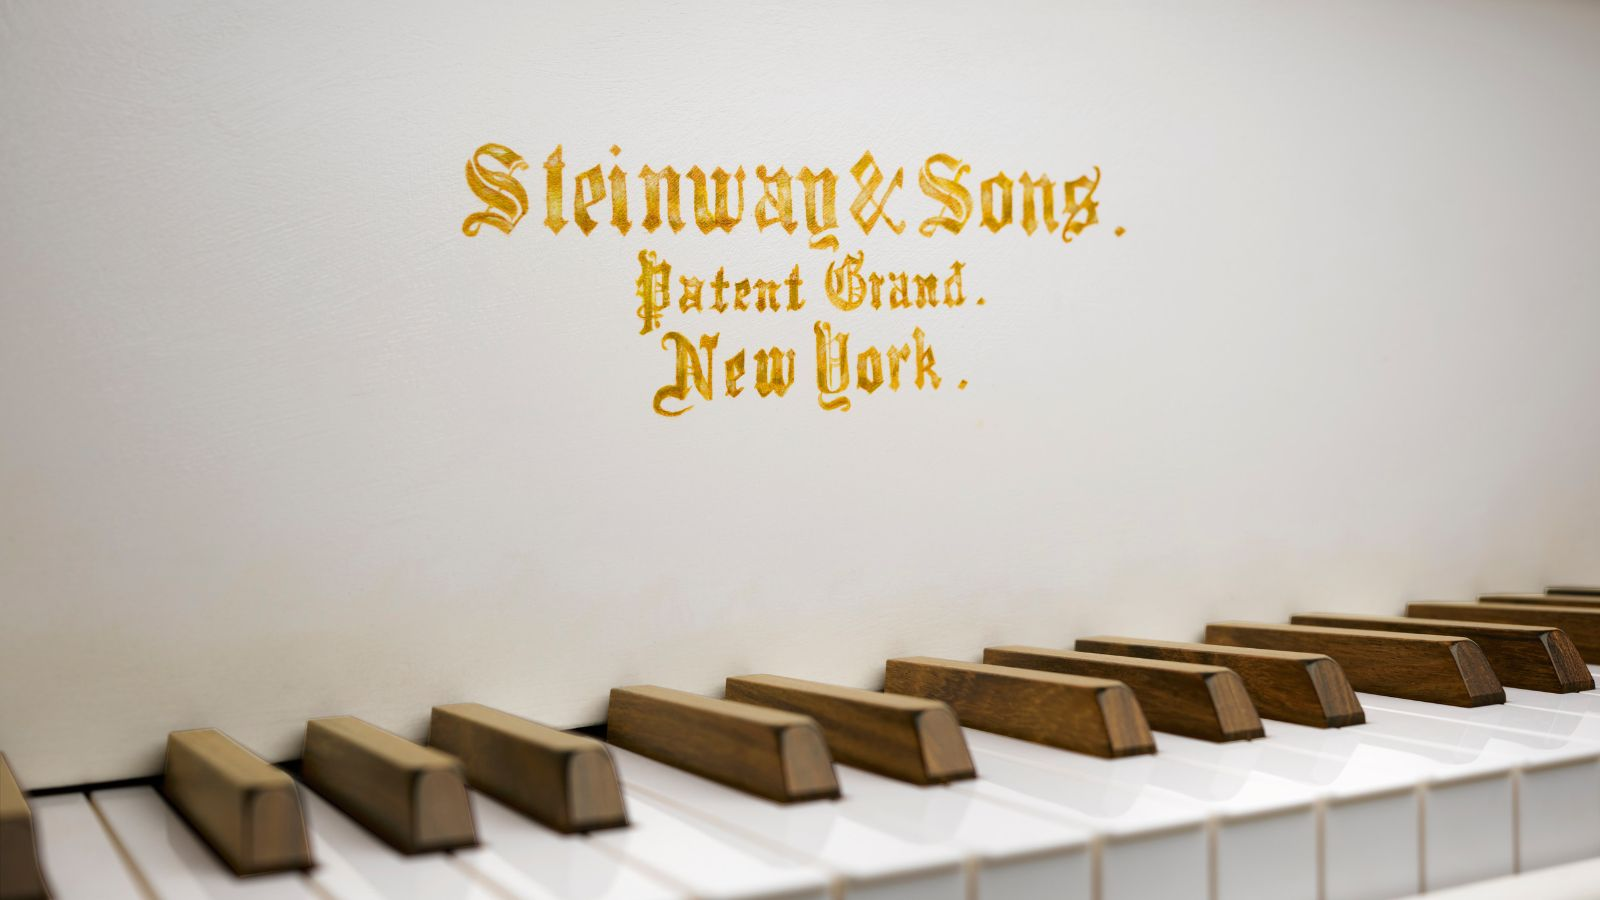 https://www.steinway.com/.imaging/mte/steinway-us-theme/Large-Rectangle/dam/Special-Pianos/pictures/Pictures_at_an_Exhibition_fallboard_detail_keys_fma2.jpg/jcr:content/Pictures_at_an_Exhibition_fallboard_detail_keys_fma2.jpg